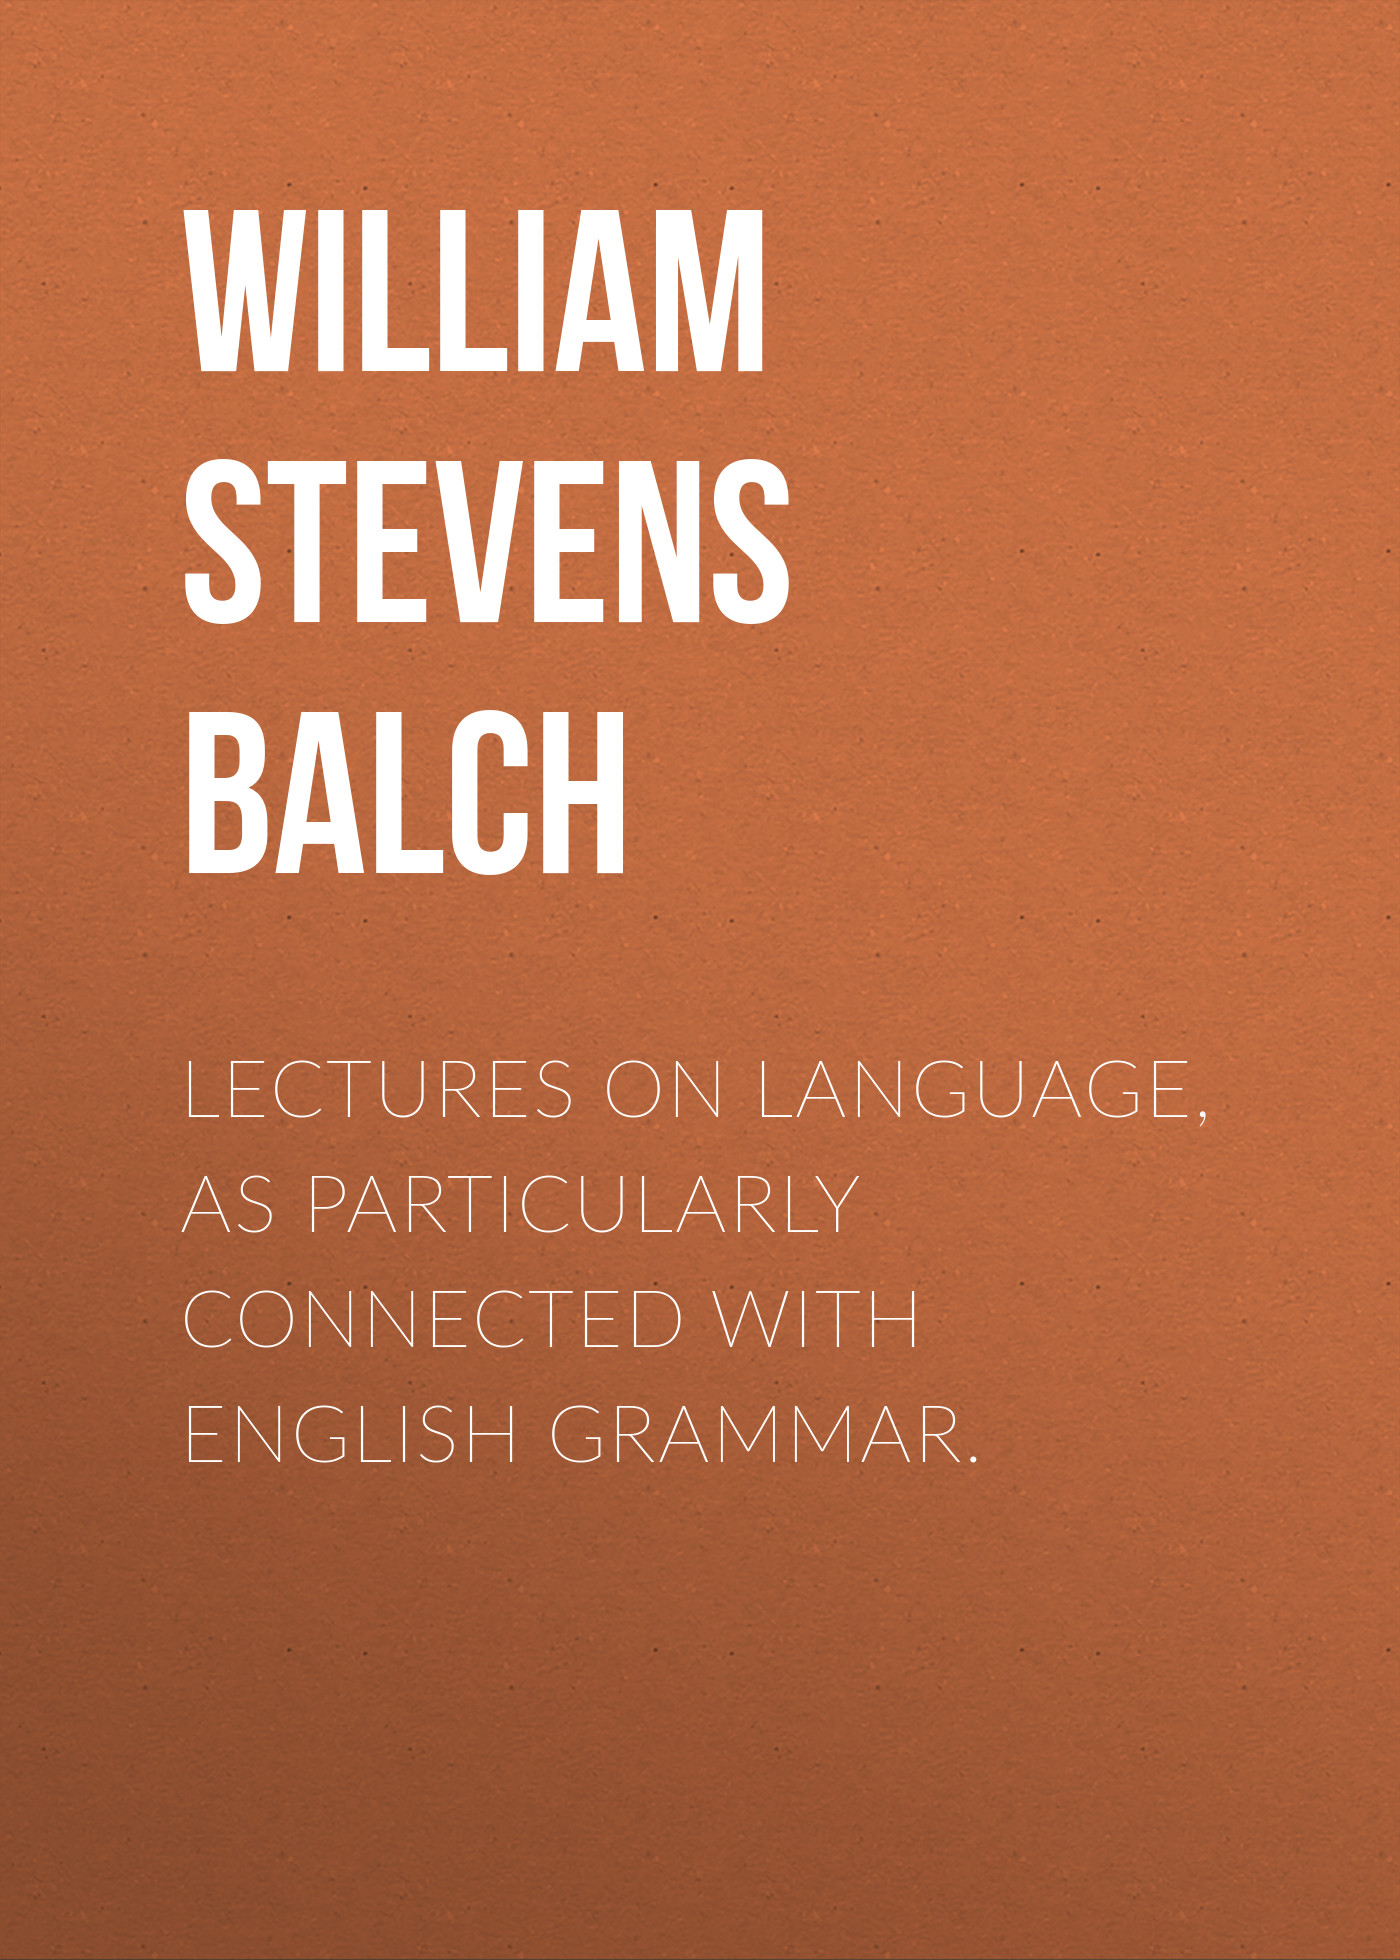 William Stevens Balch Lectures on Language, as Particularly Connected with English Grammar.